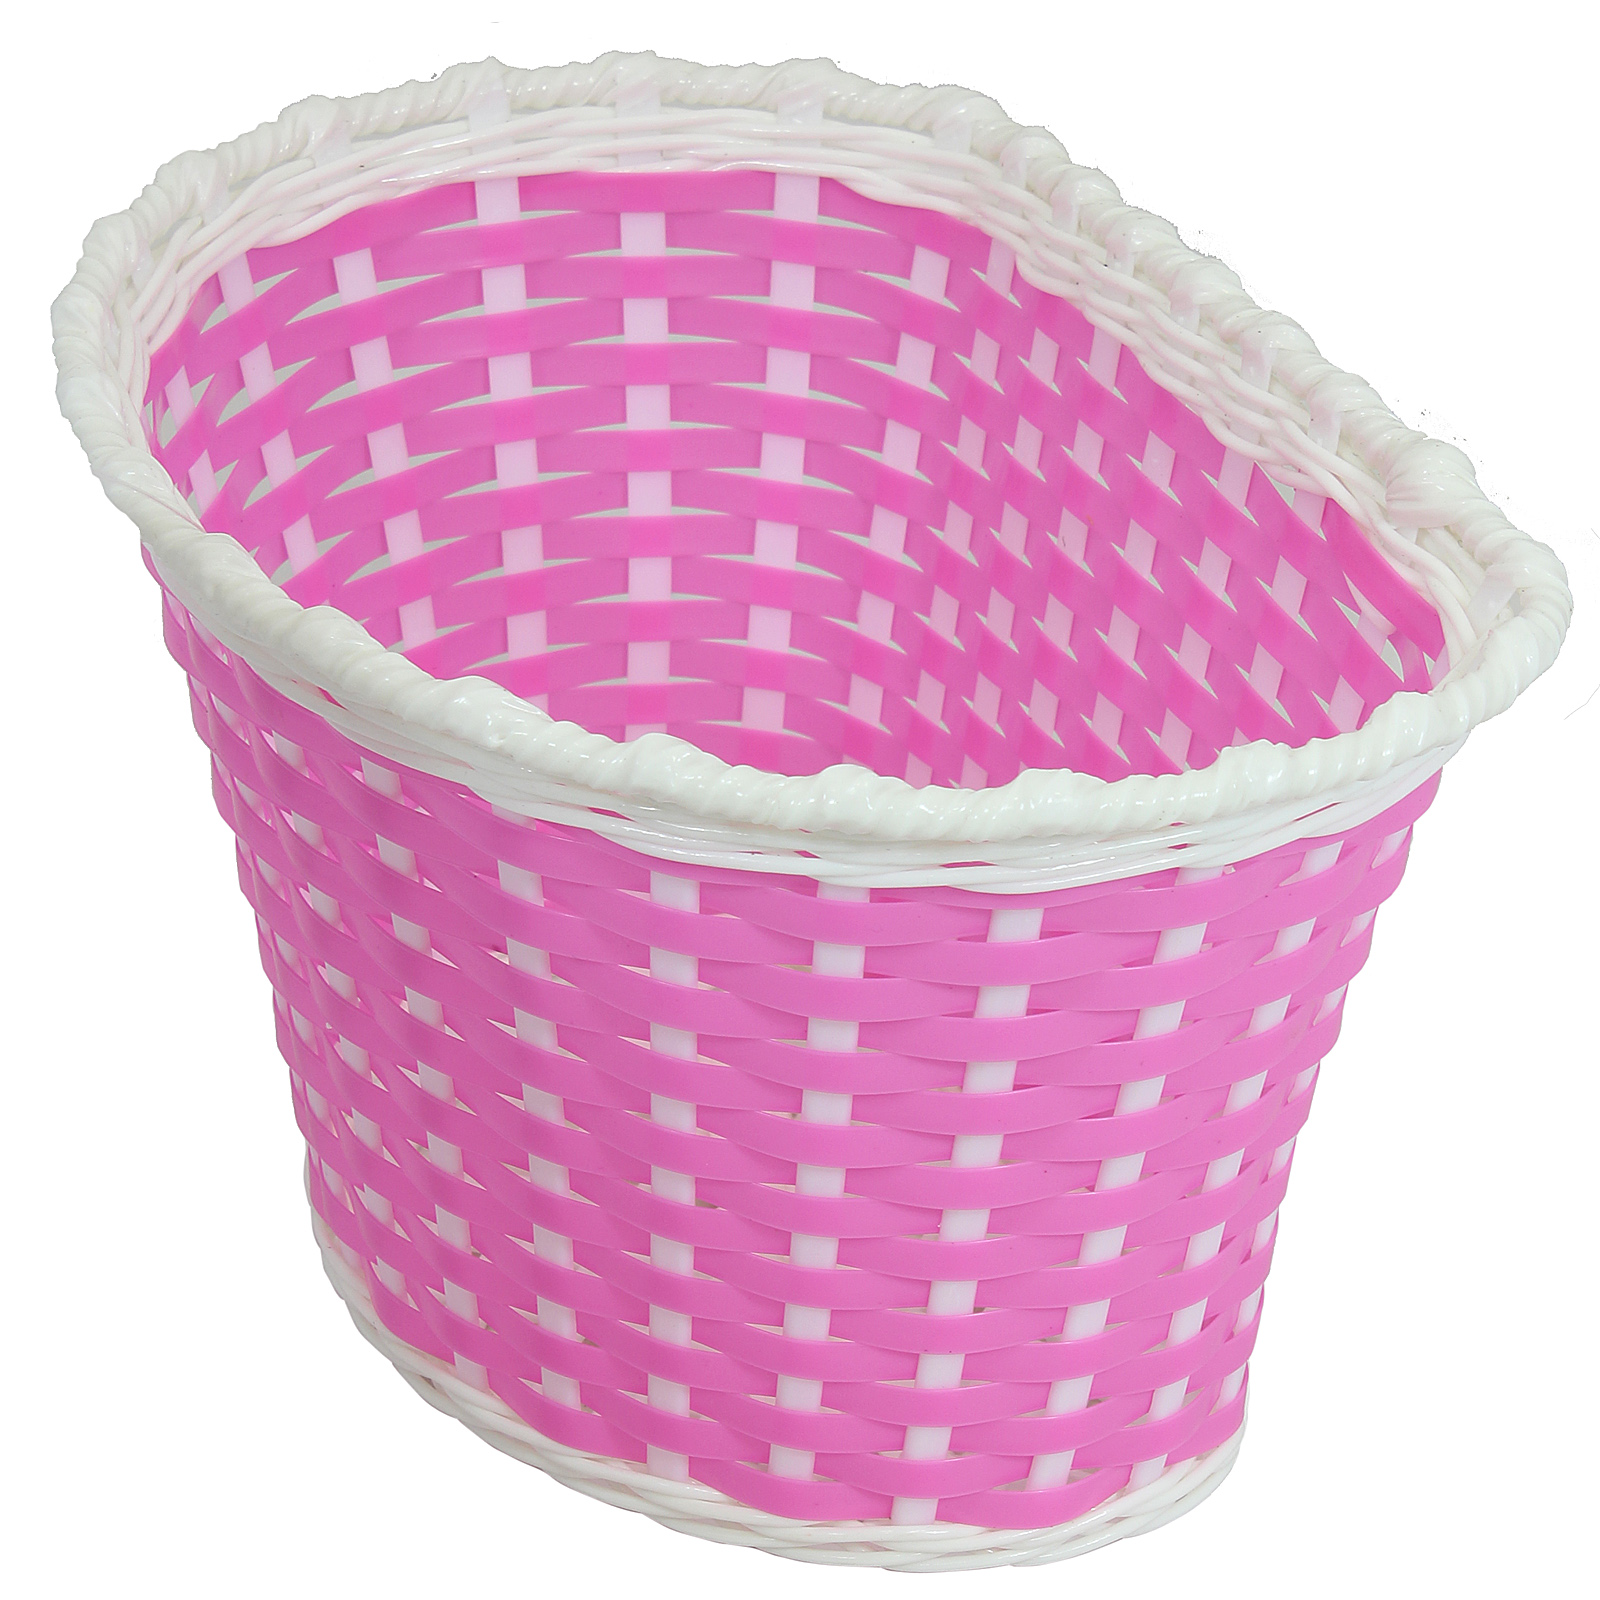 Pink Childs Bicycle Basket Children Kids Boy Girl Bike